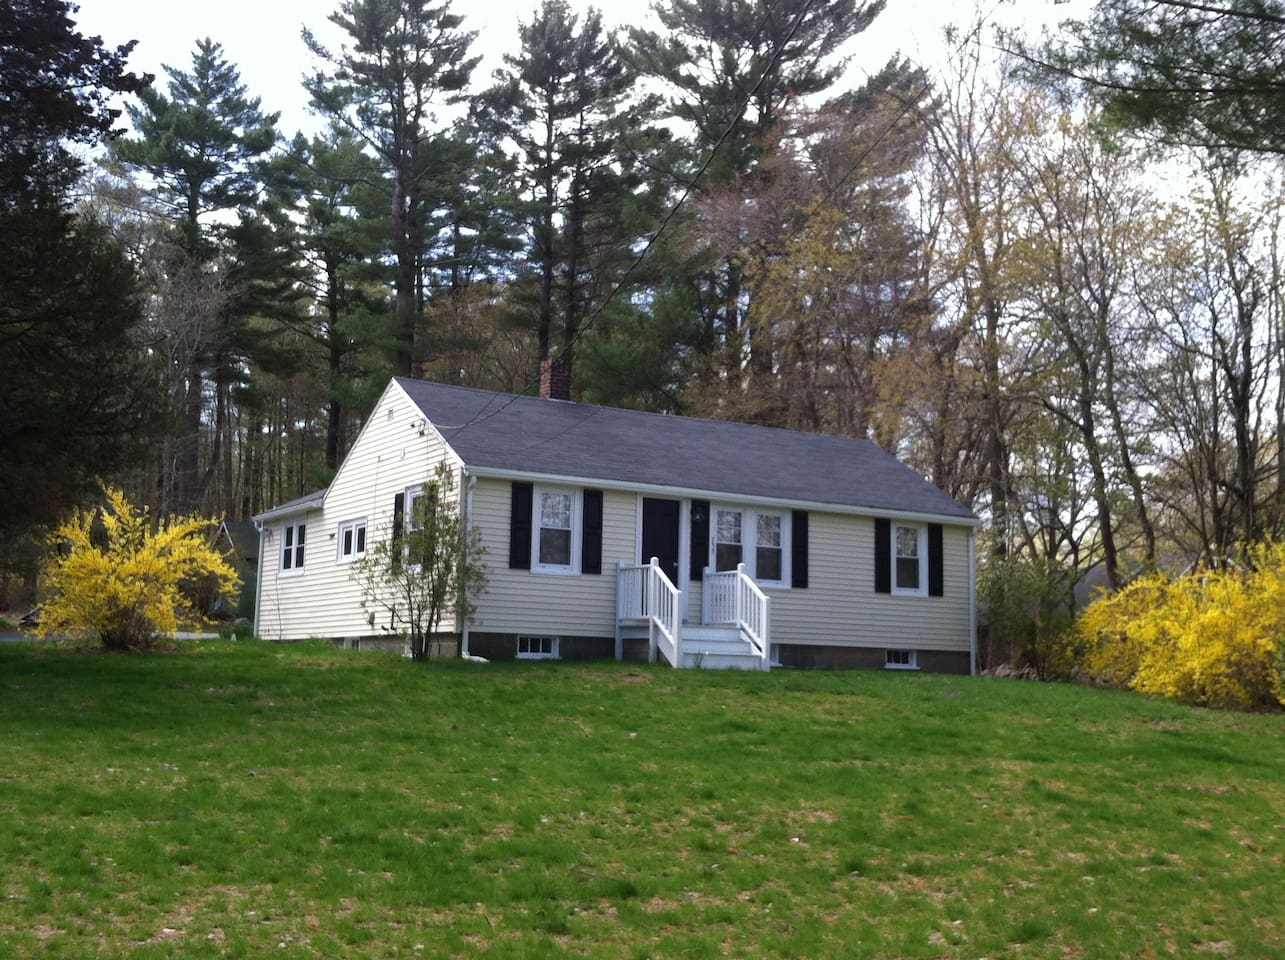 Lovely ranch on quiet spacious property 5 mins Scituate marina & cultural and artistic center. Centrally located to Boston, New York, Cape Cod and islands!